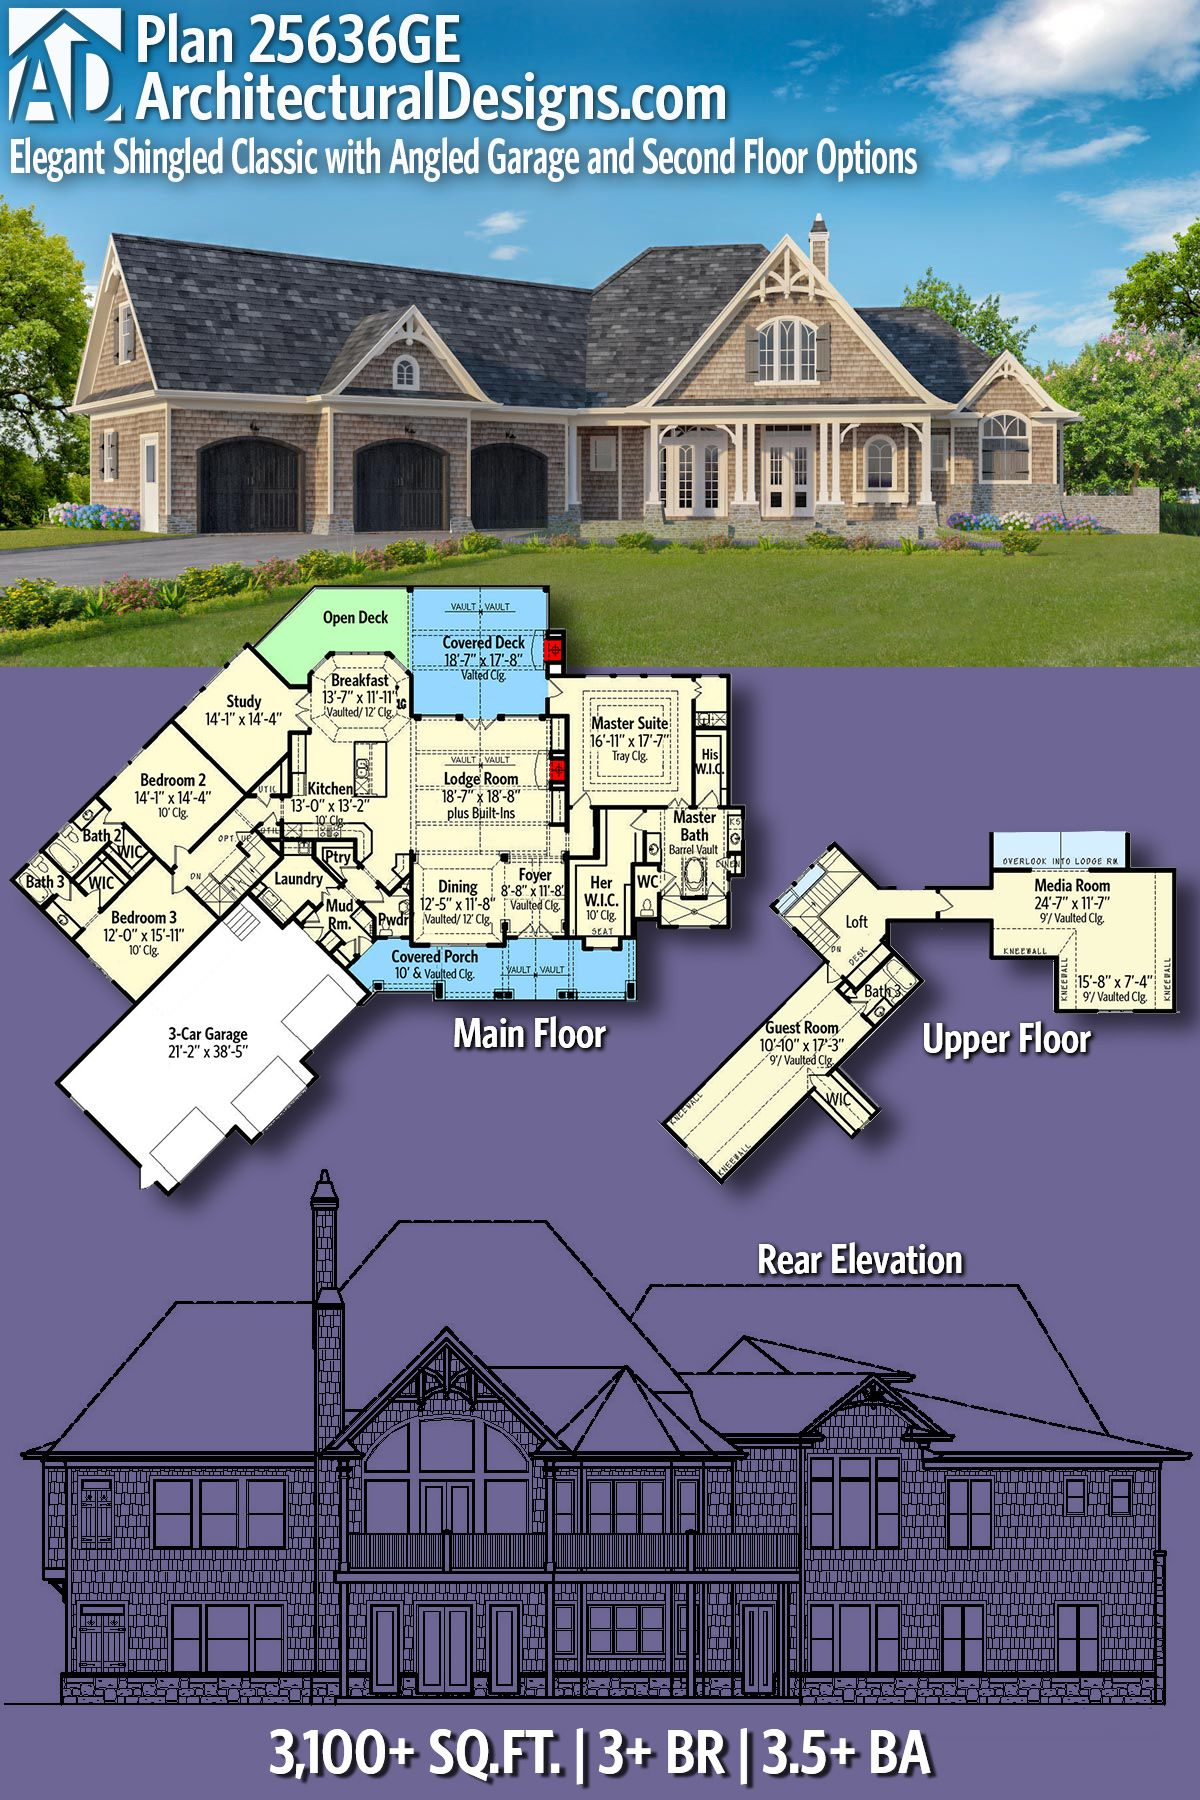 Plan 25636GE Shingle Style Classic with Lots